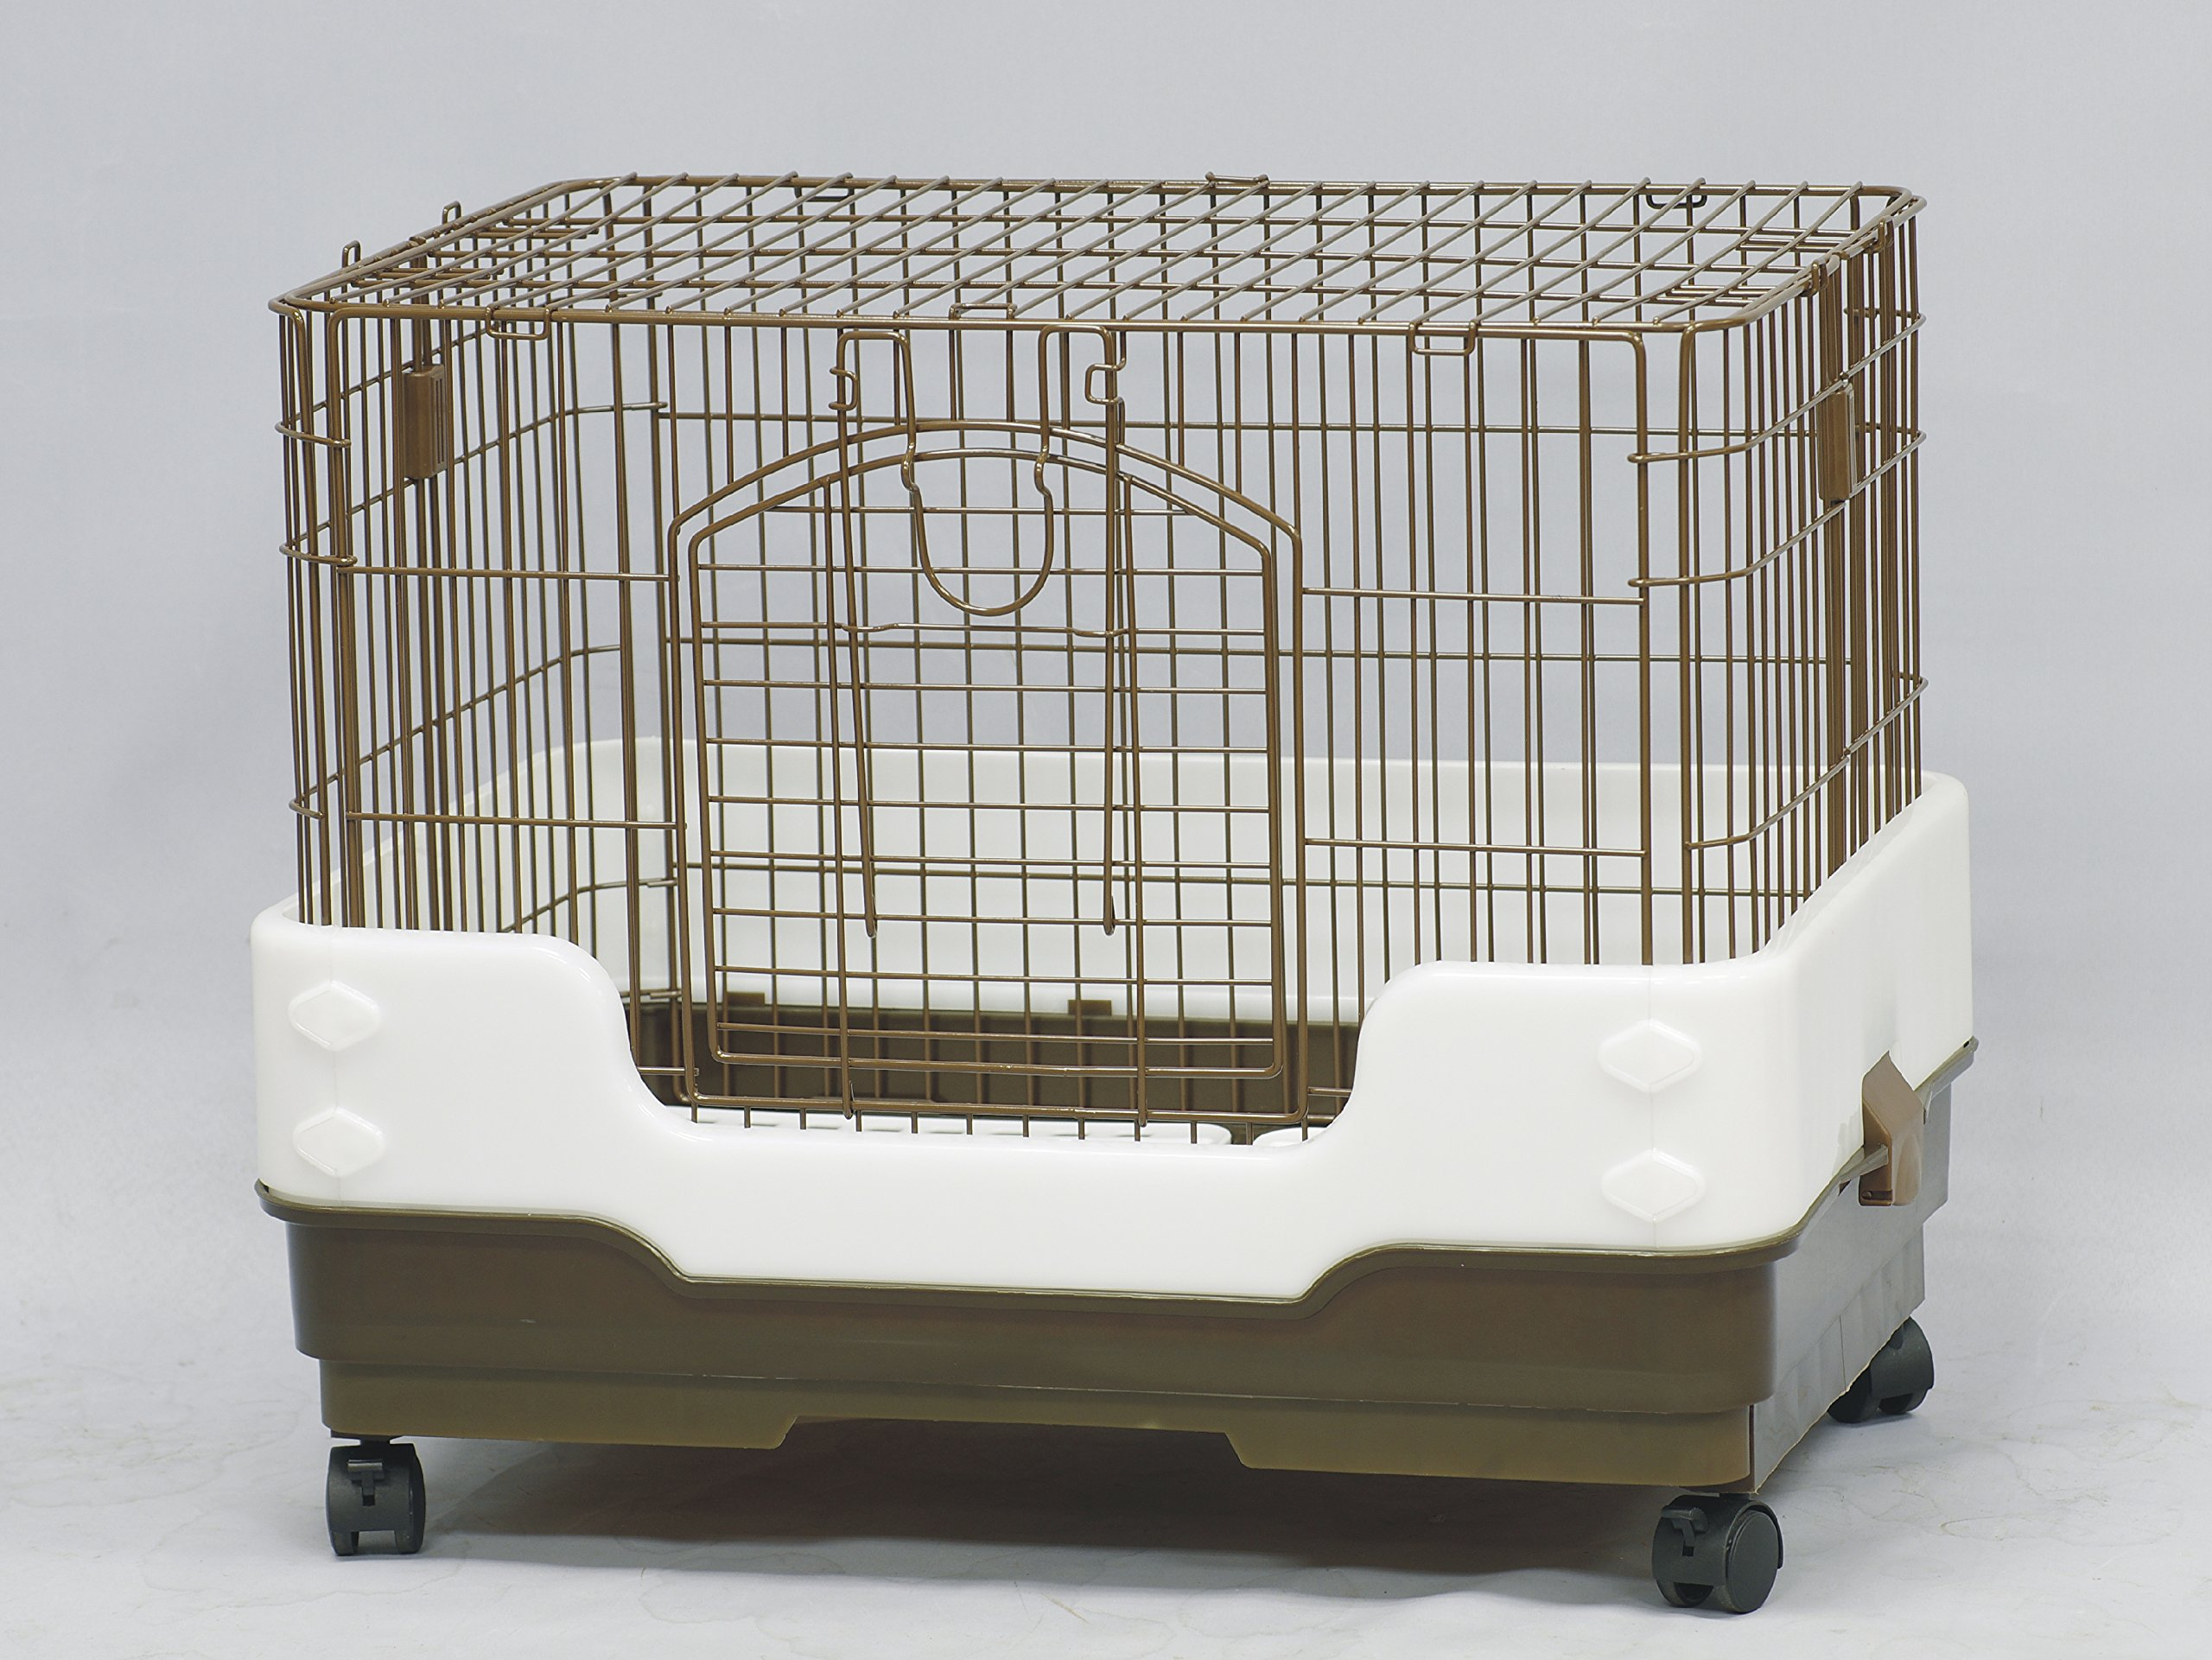 Homey Pet Rabbit Chinchilla Hamster Rat Ferret Cage with Pull out tray, Urine Guard and Lockable Casters, Brown, L26''x W18''x H21''